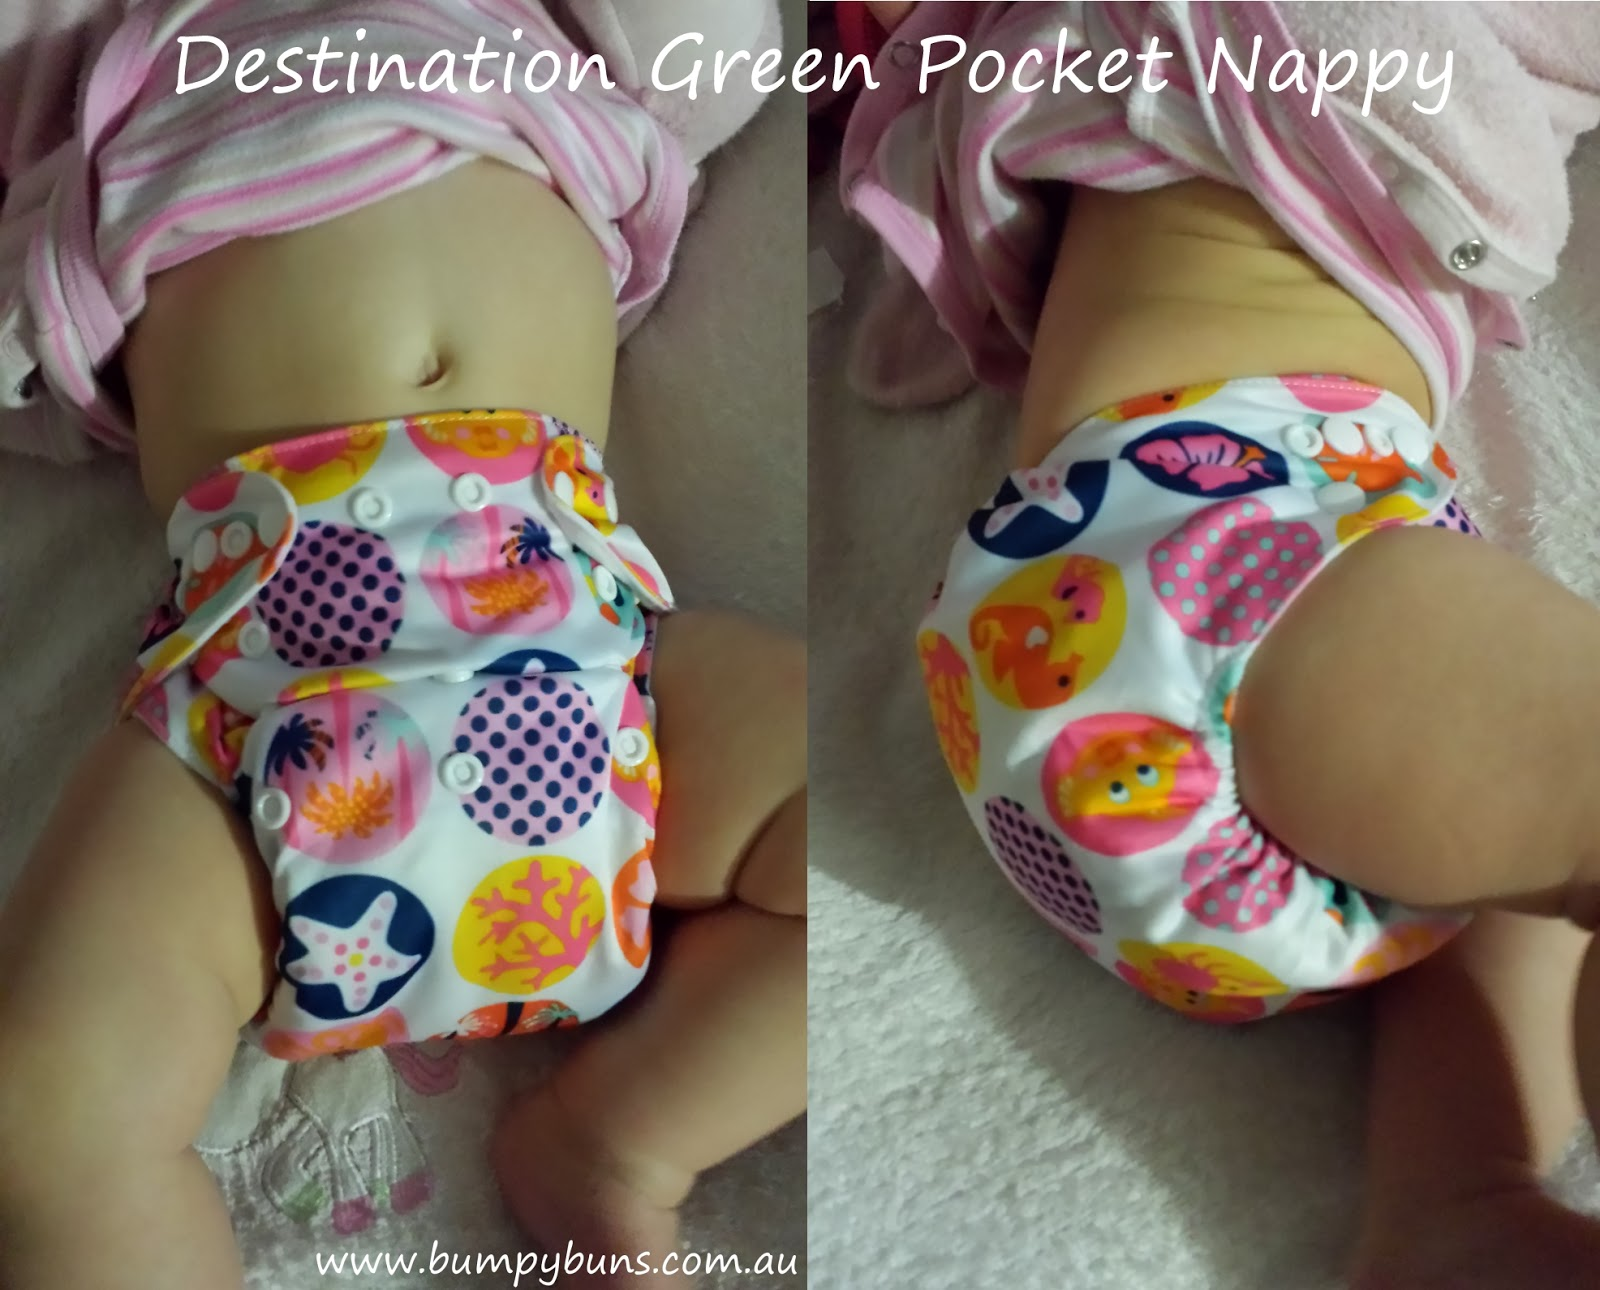 Destination Green Pocket Cloth Nappy